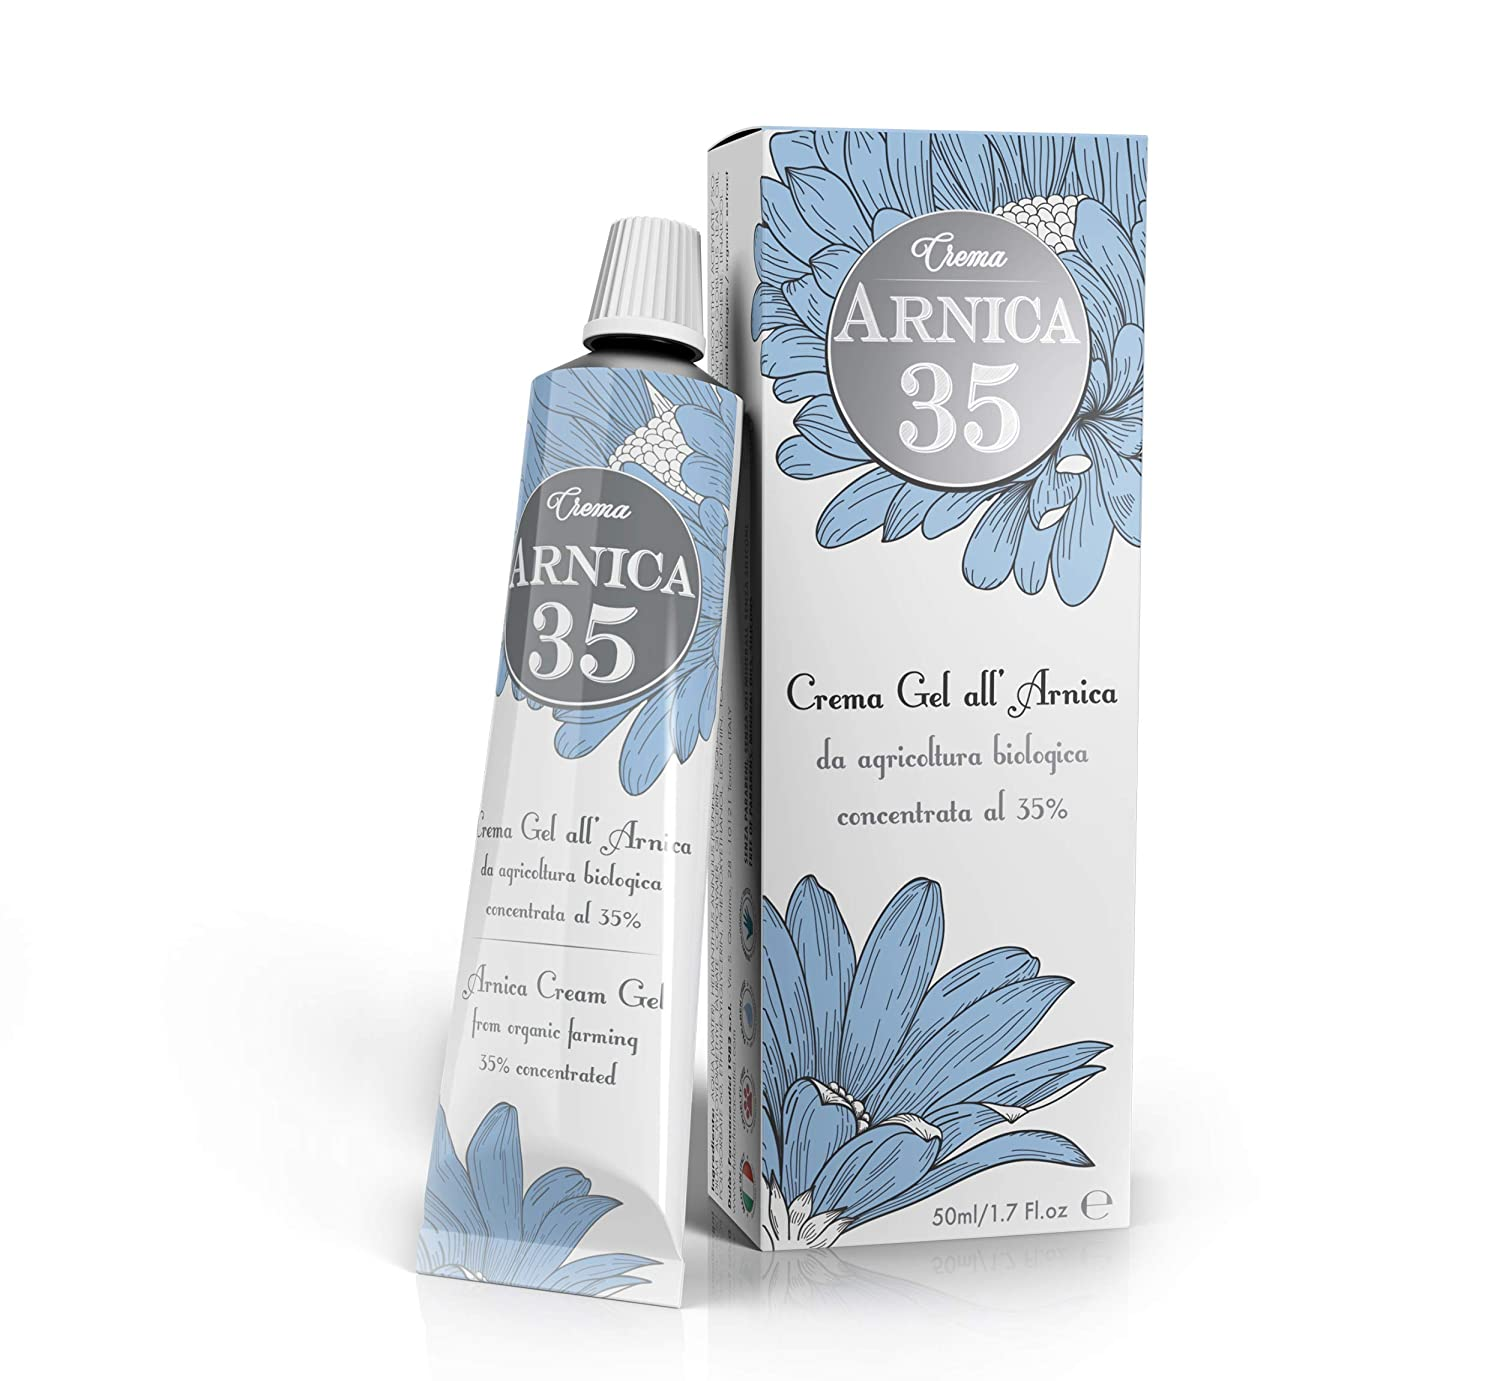 Dulàc - Arnica Gel Cream with a 35% concentration - 1.7 Fl.oz - THE MOST CONCENTRATED - 100% Made in Italy - Arnica 35